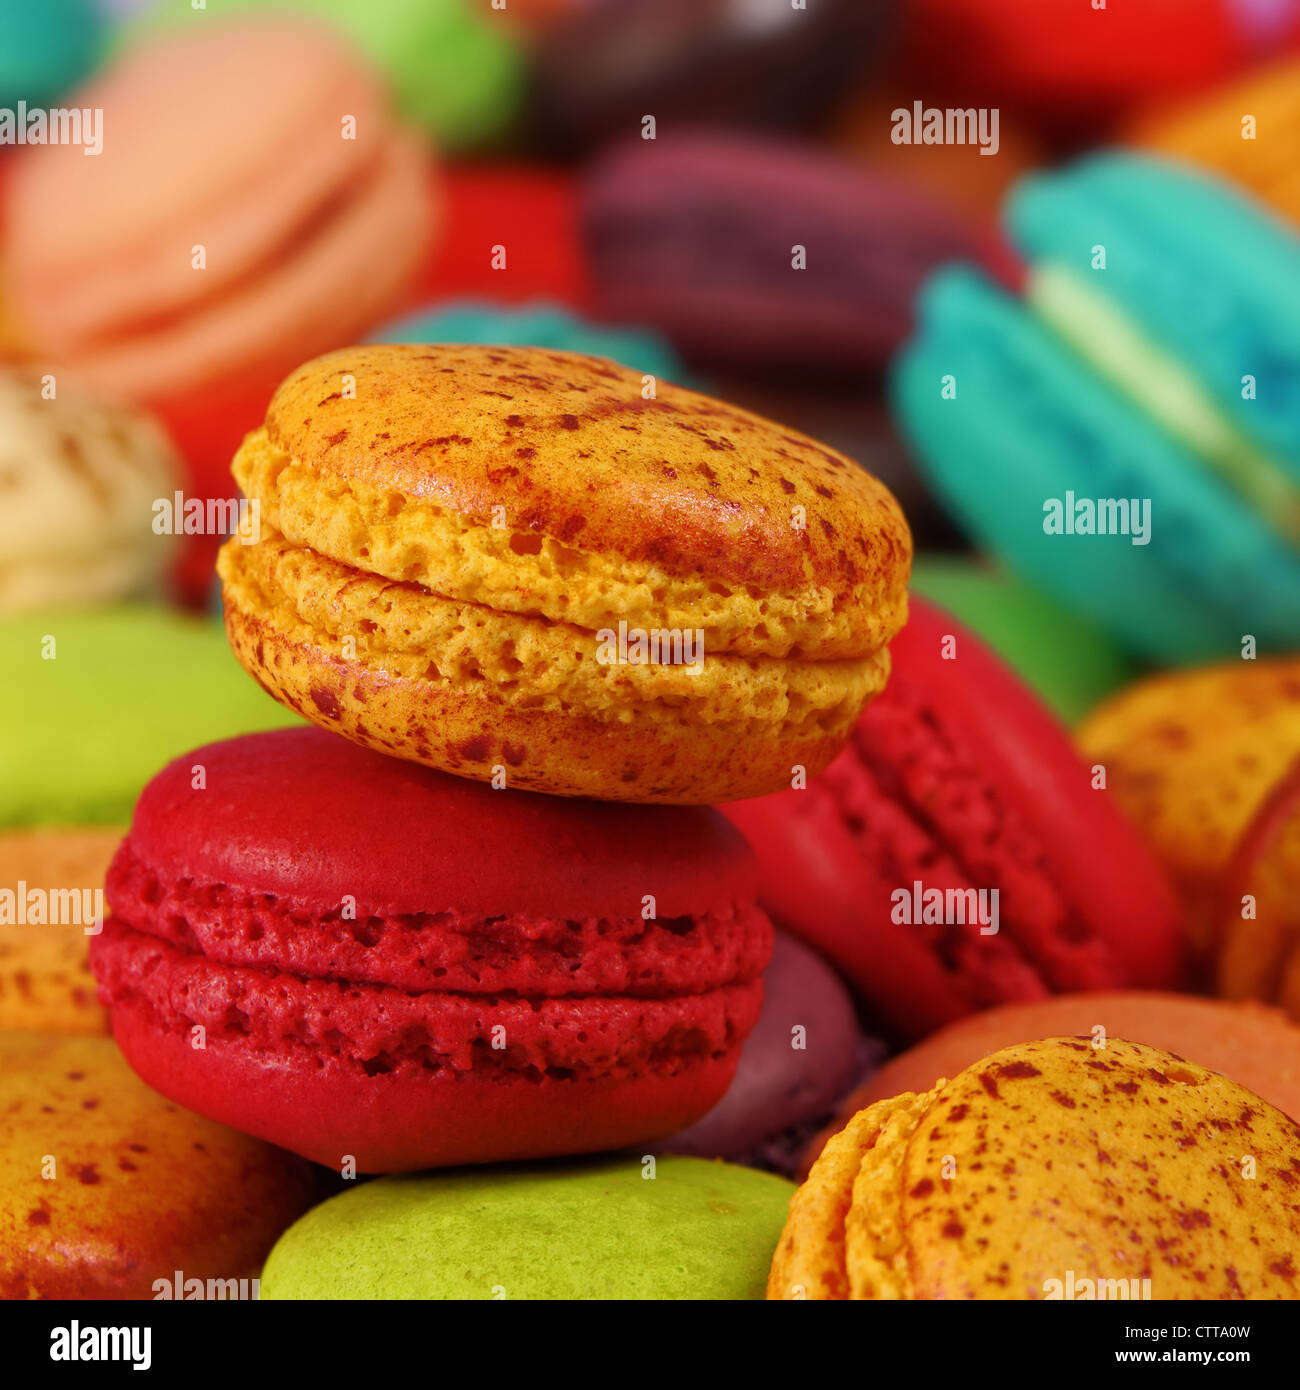 cherry and grapefruit macaroons on an assortment of colorful macaroons - Stock Image